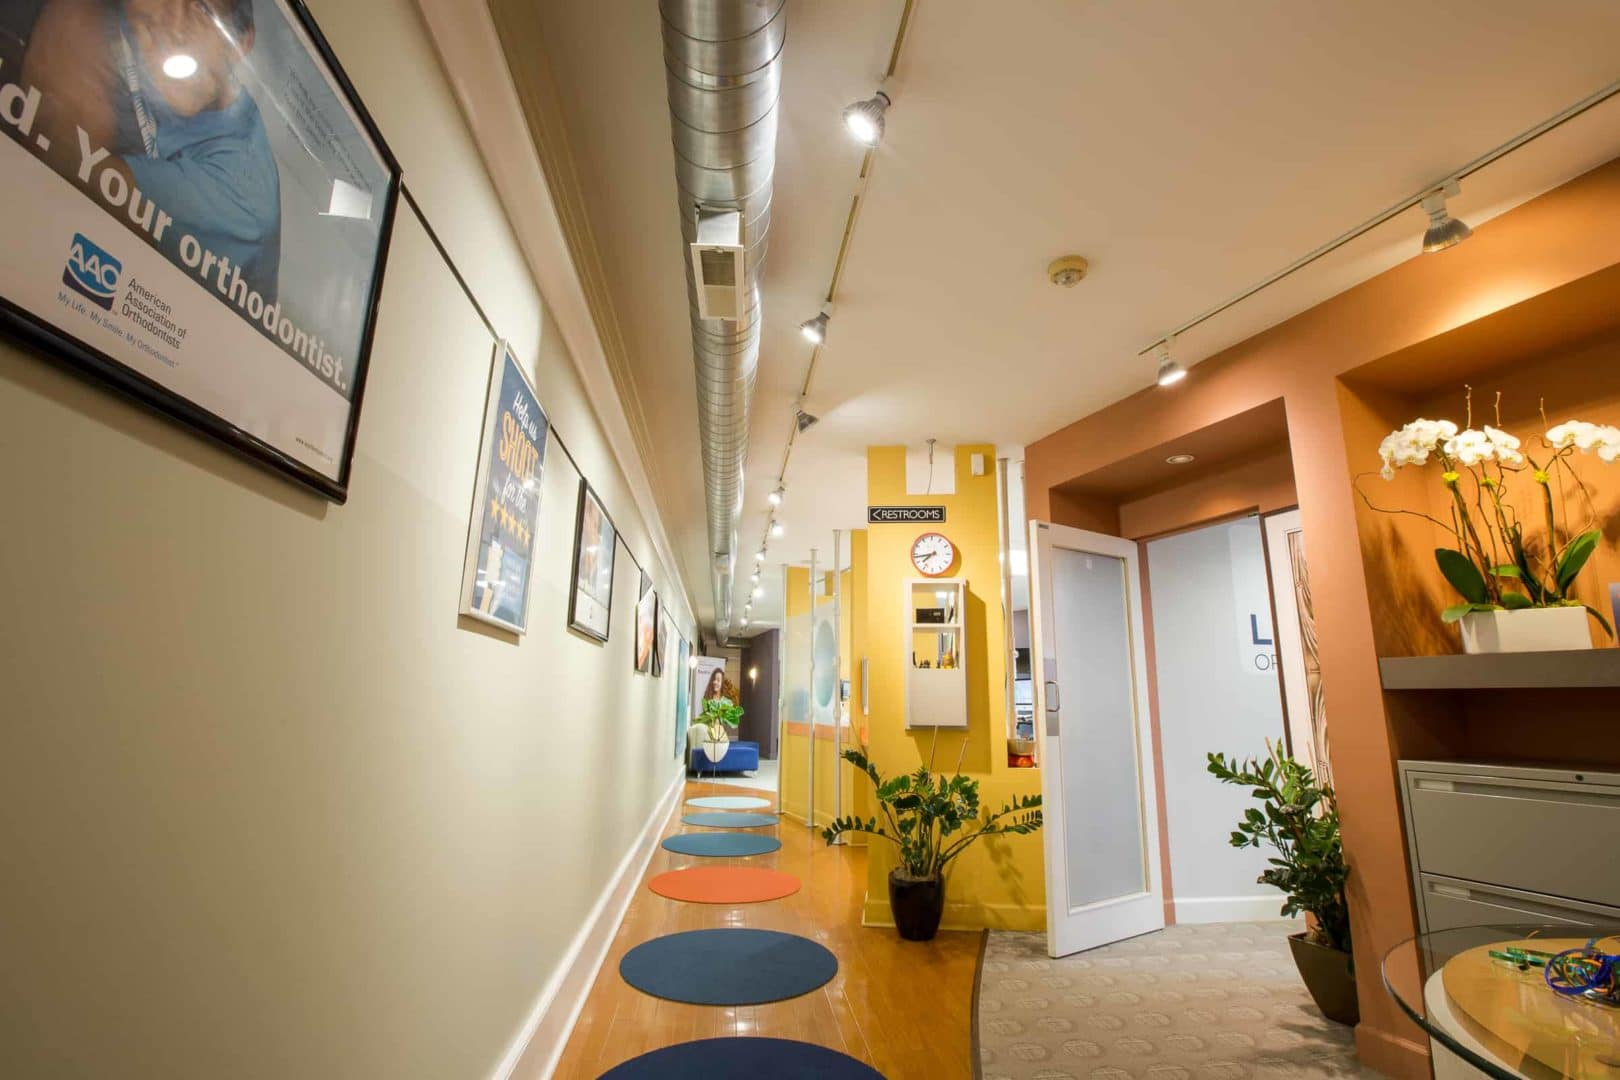 interior LarsonOrthodontics AlexandriaVA smilesbylarson.com6  e1524060367892 - What To Expect At Your Next Appointment